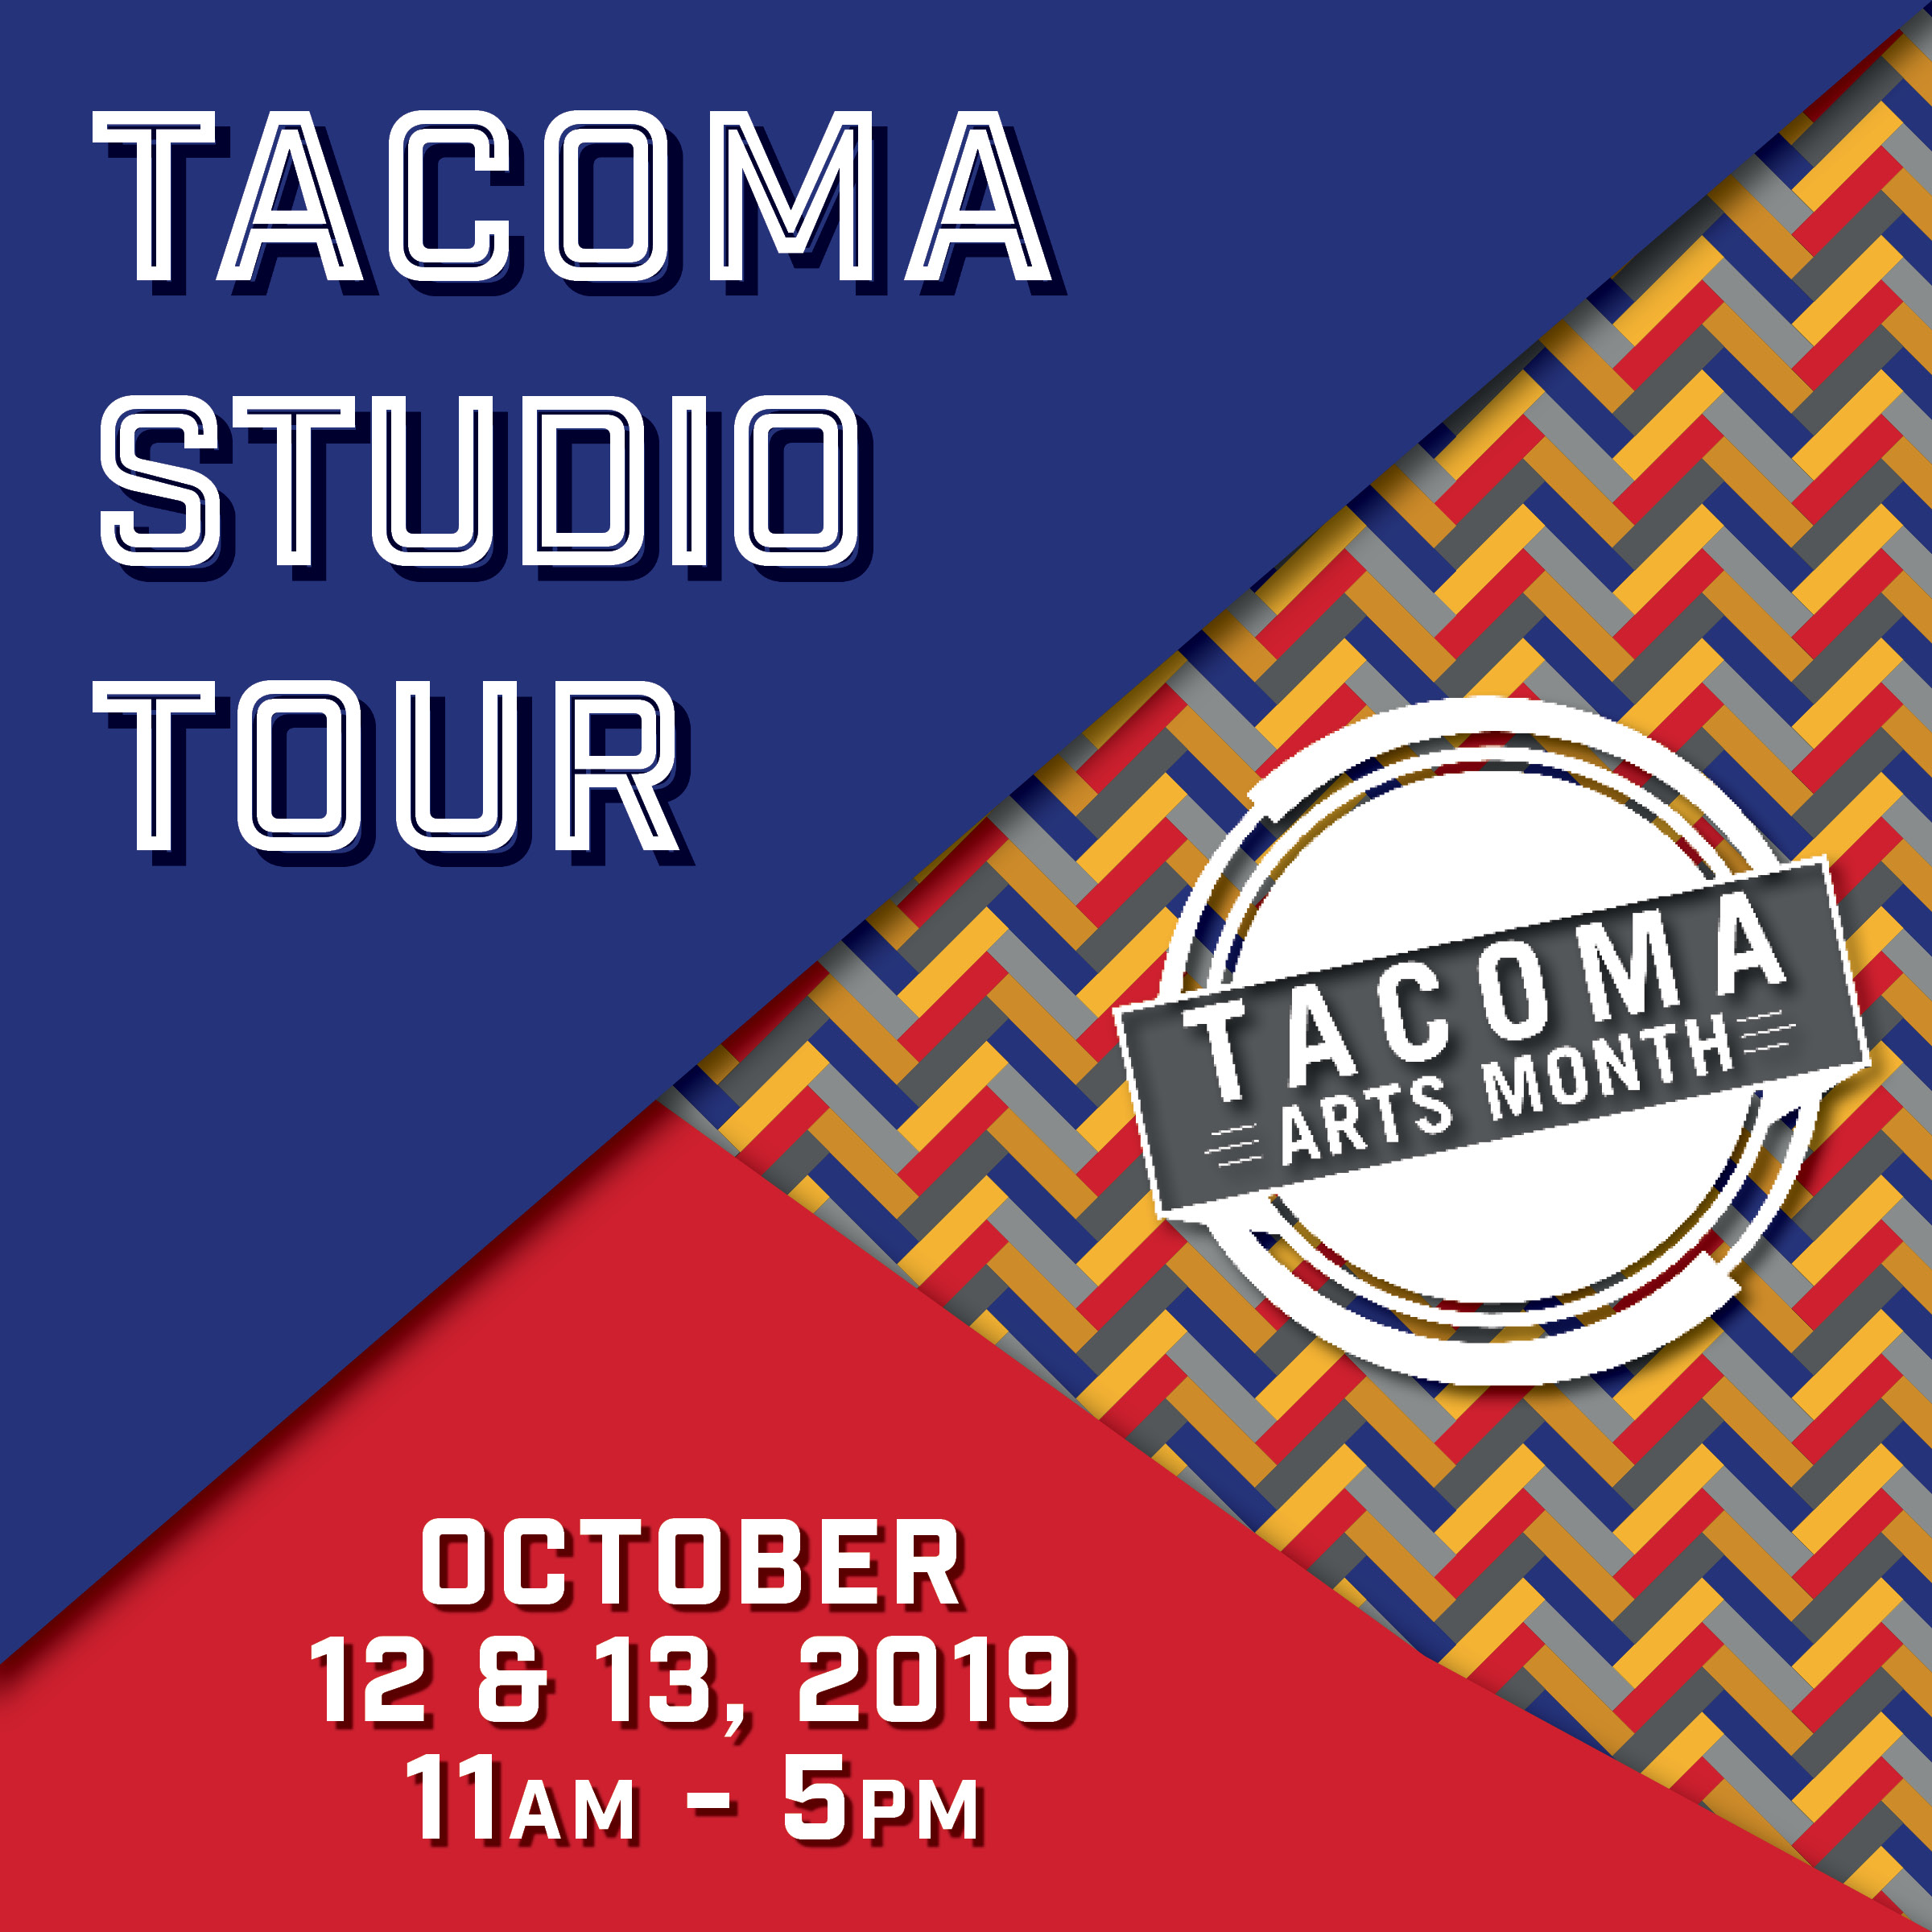 Images from   Tacoma Arts